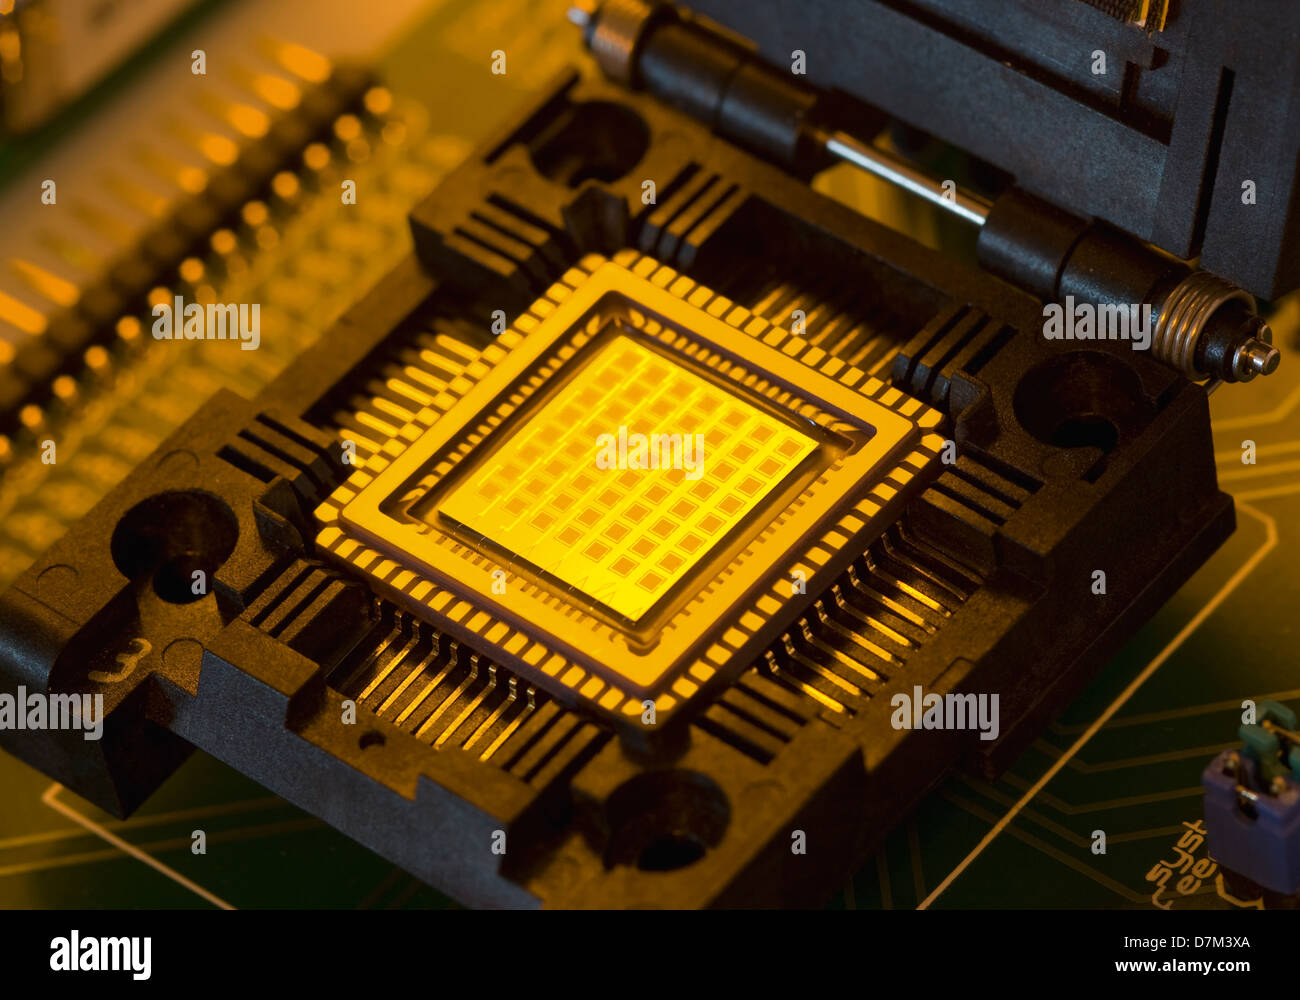 Microchip con celle a combustibile, close up Immagini Stock